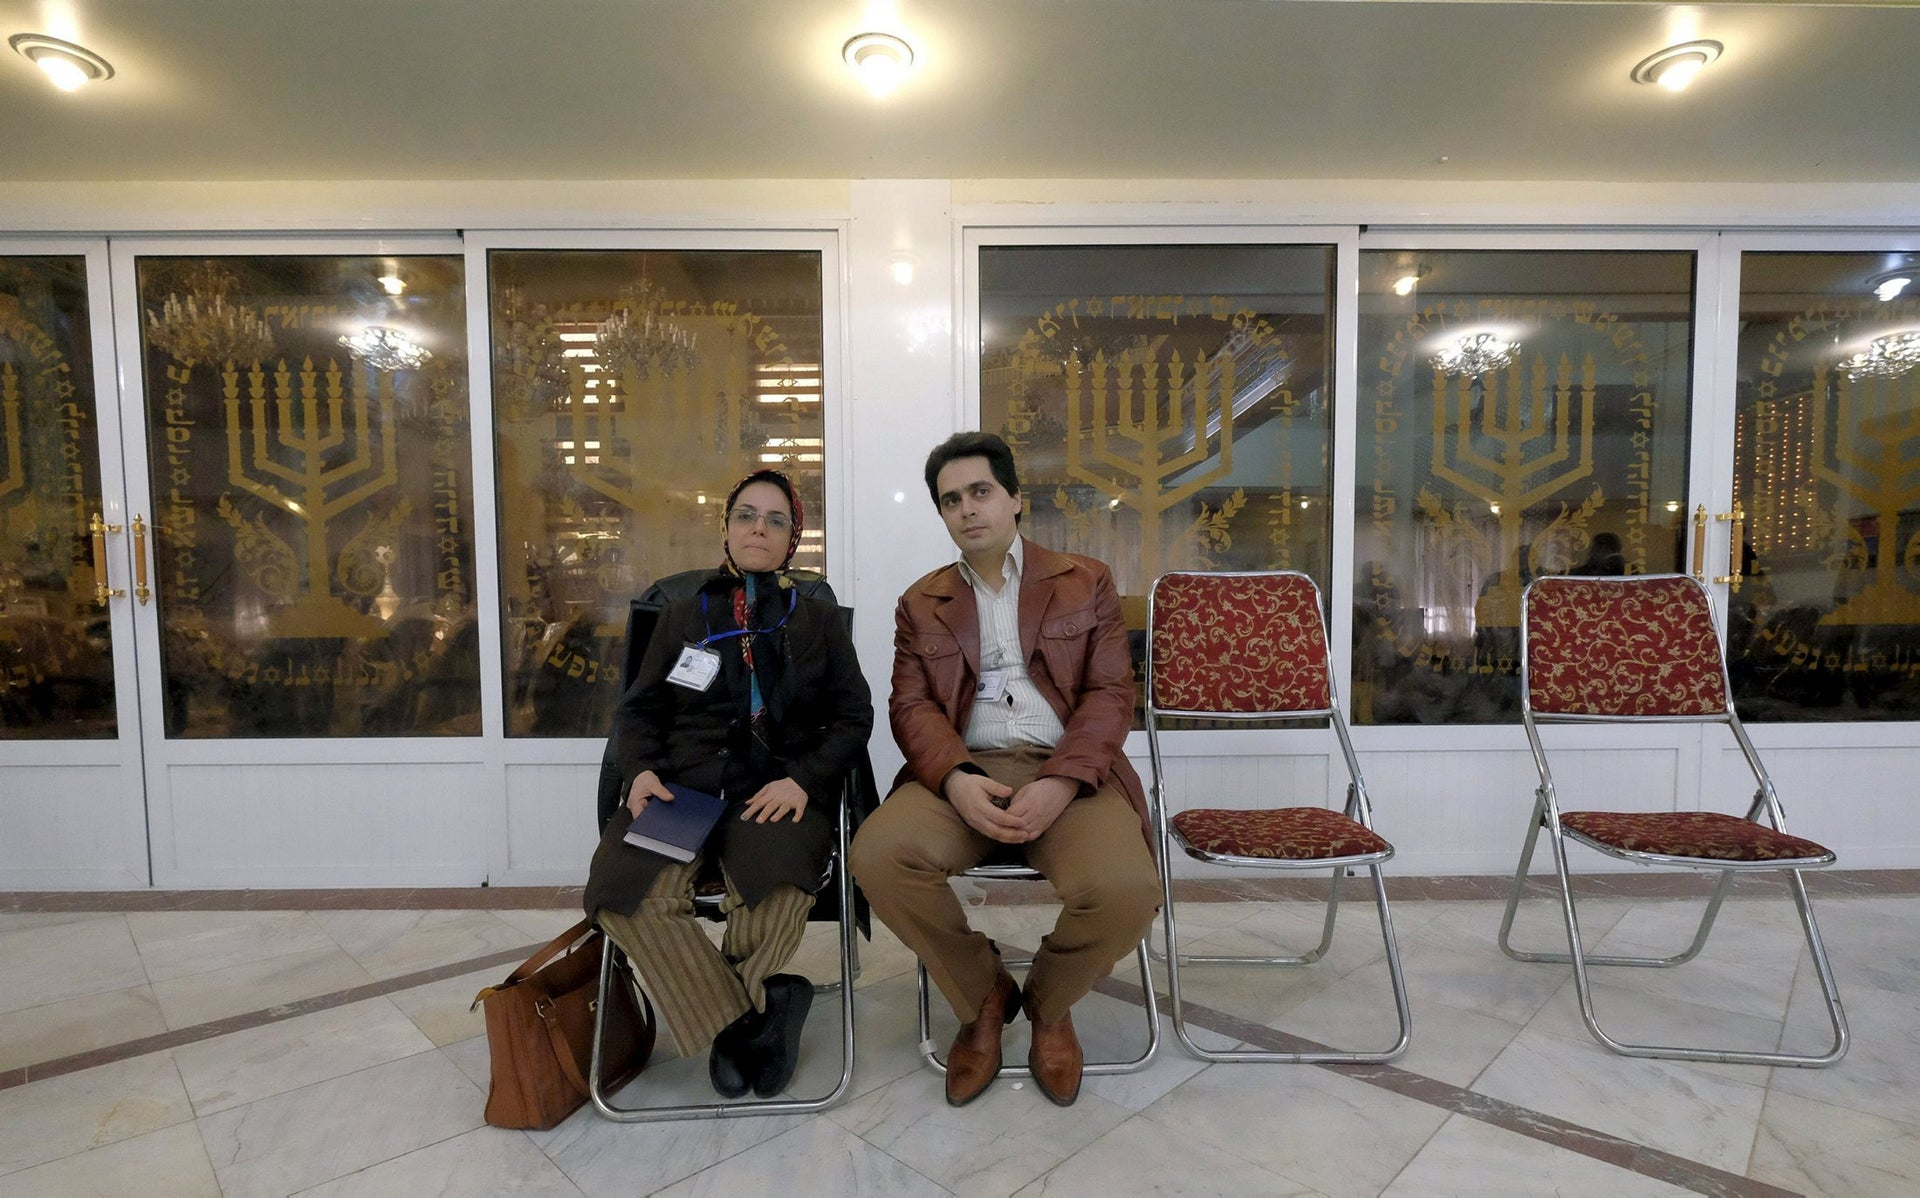 Iranian Jewish election officials rest at a synagogue, used as a polling station, during elections for the parliament and Assembly of Experts, which has the power to appoint and dismiss the supreme leader, in Tehran February 26, 2016.